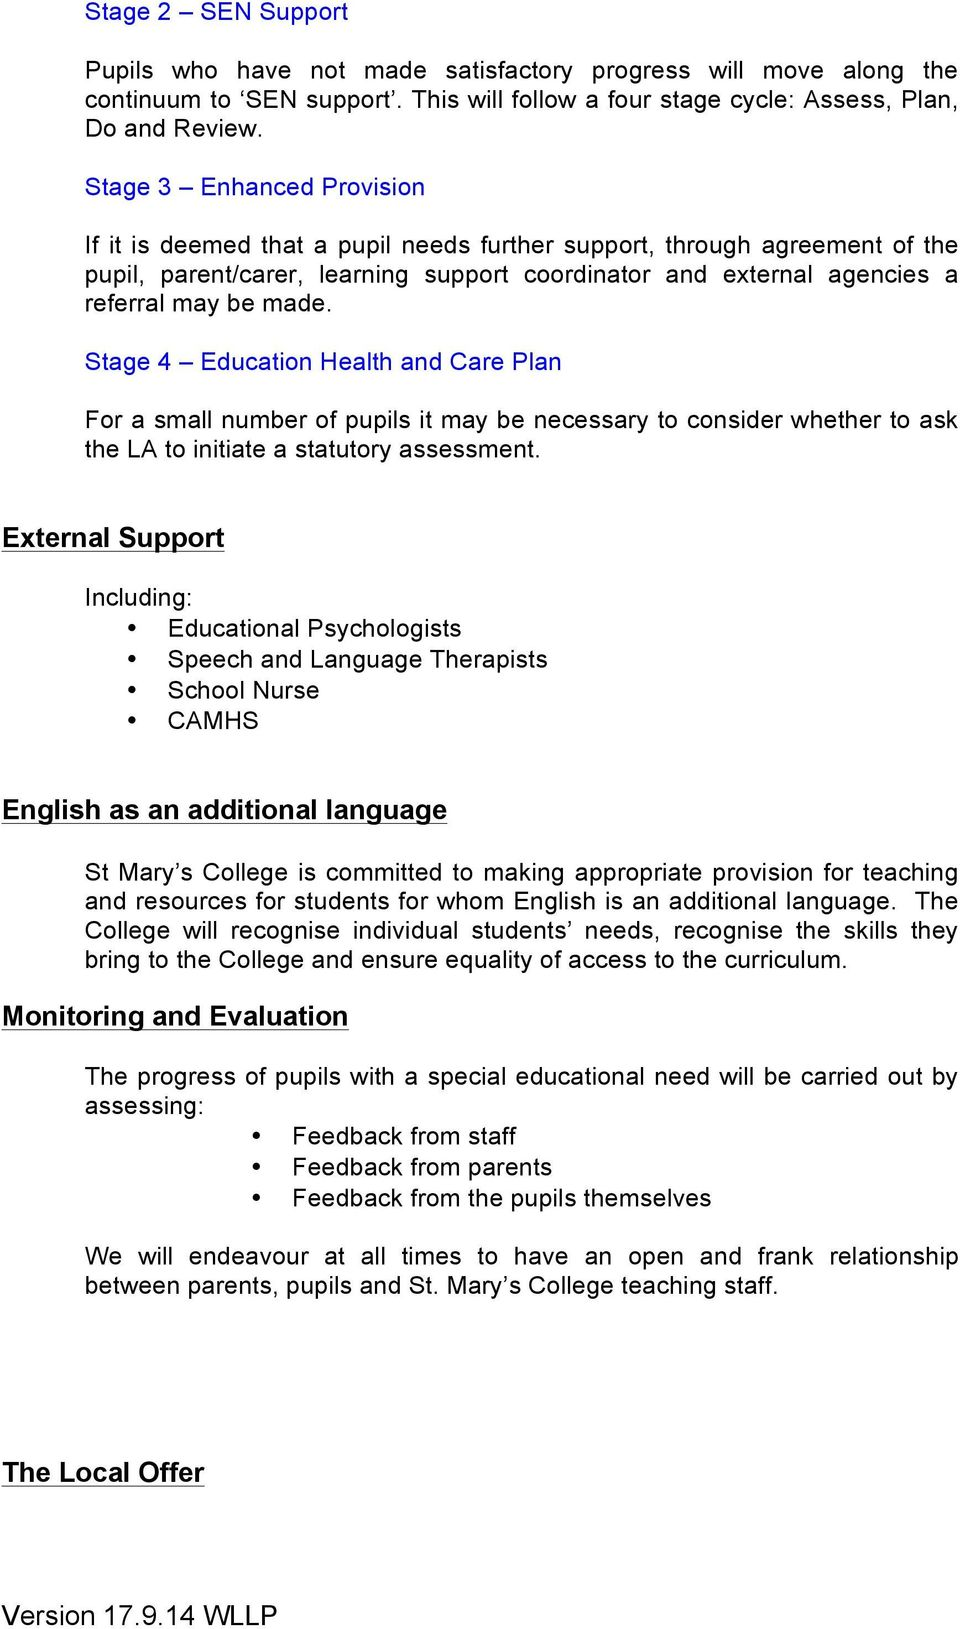 Stage 4 Education Health and Care Plan For a small number of pupils it may be necessary to consider whether to ask the LA to initiate a statutory assessment.